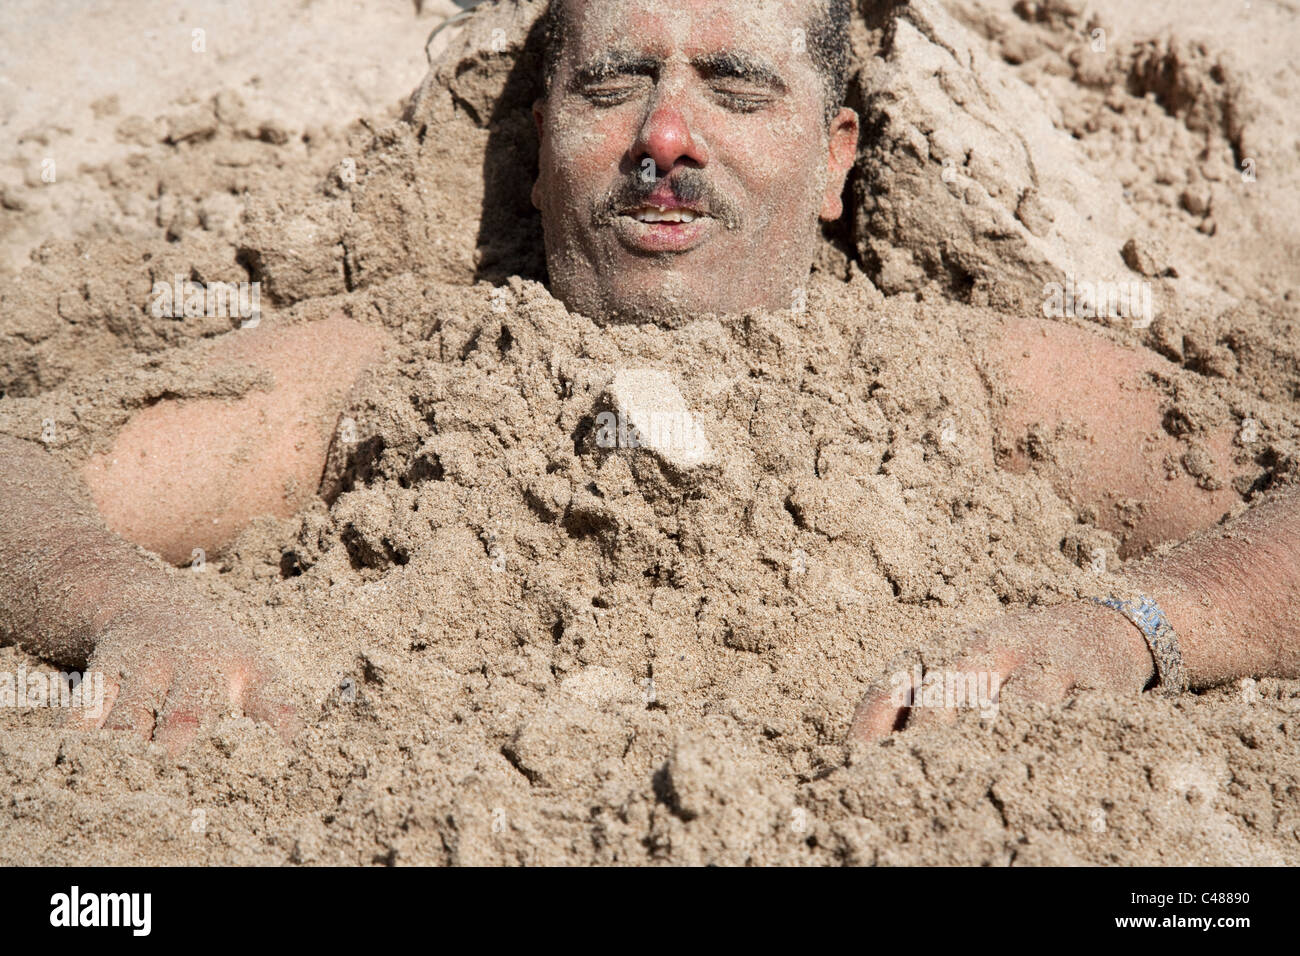 A man buried in the sand on the beach on the coast of Red Sea in Aden, Yemen. - Stock Image